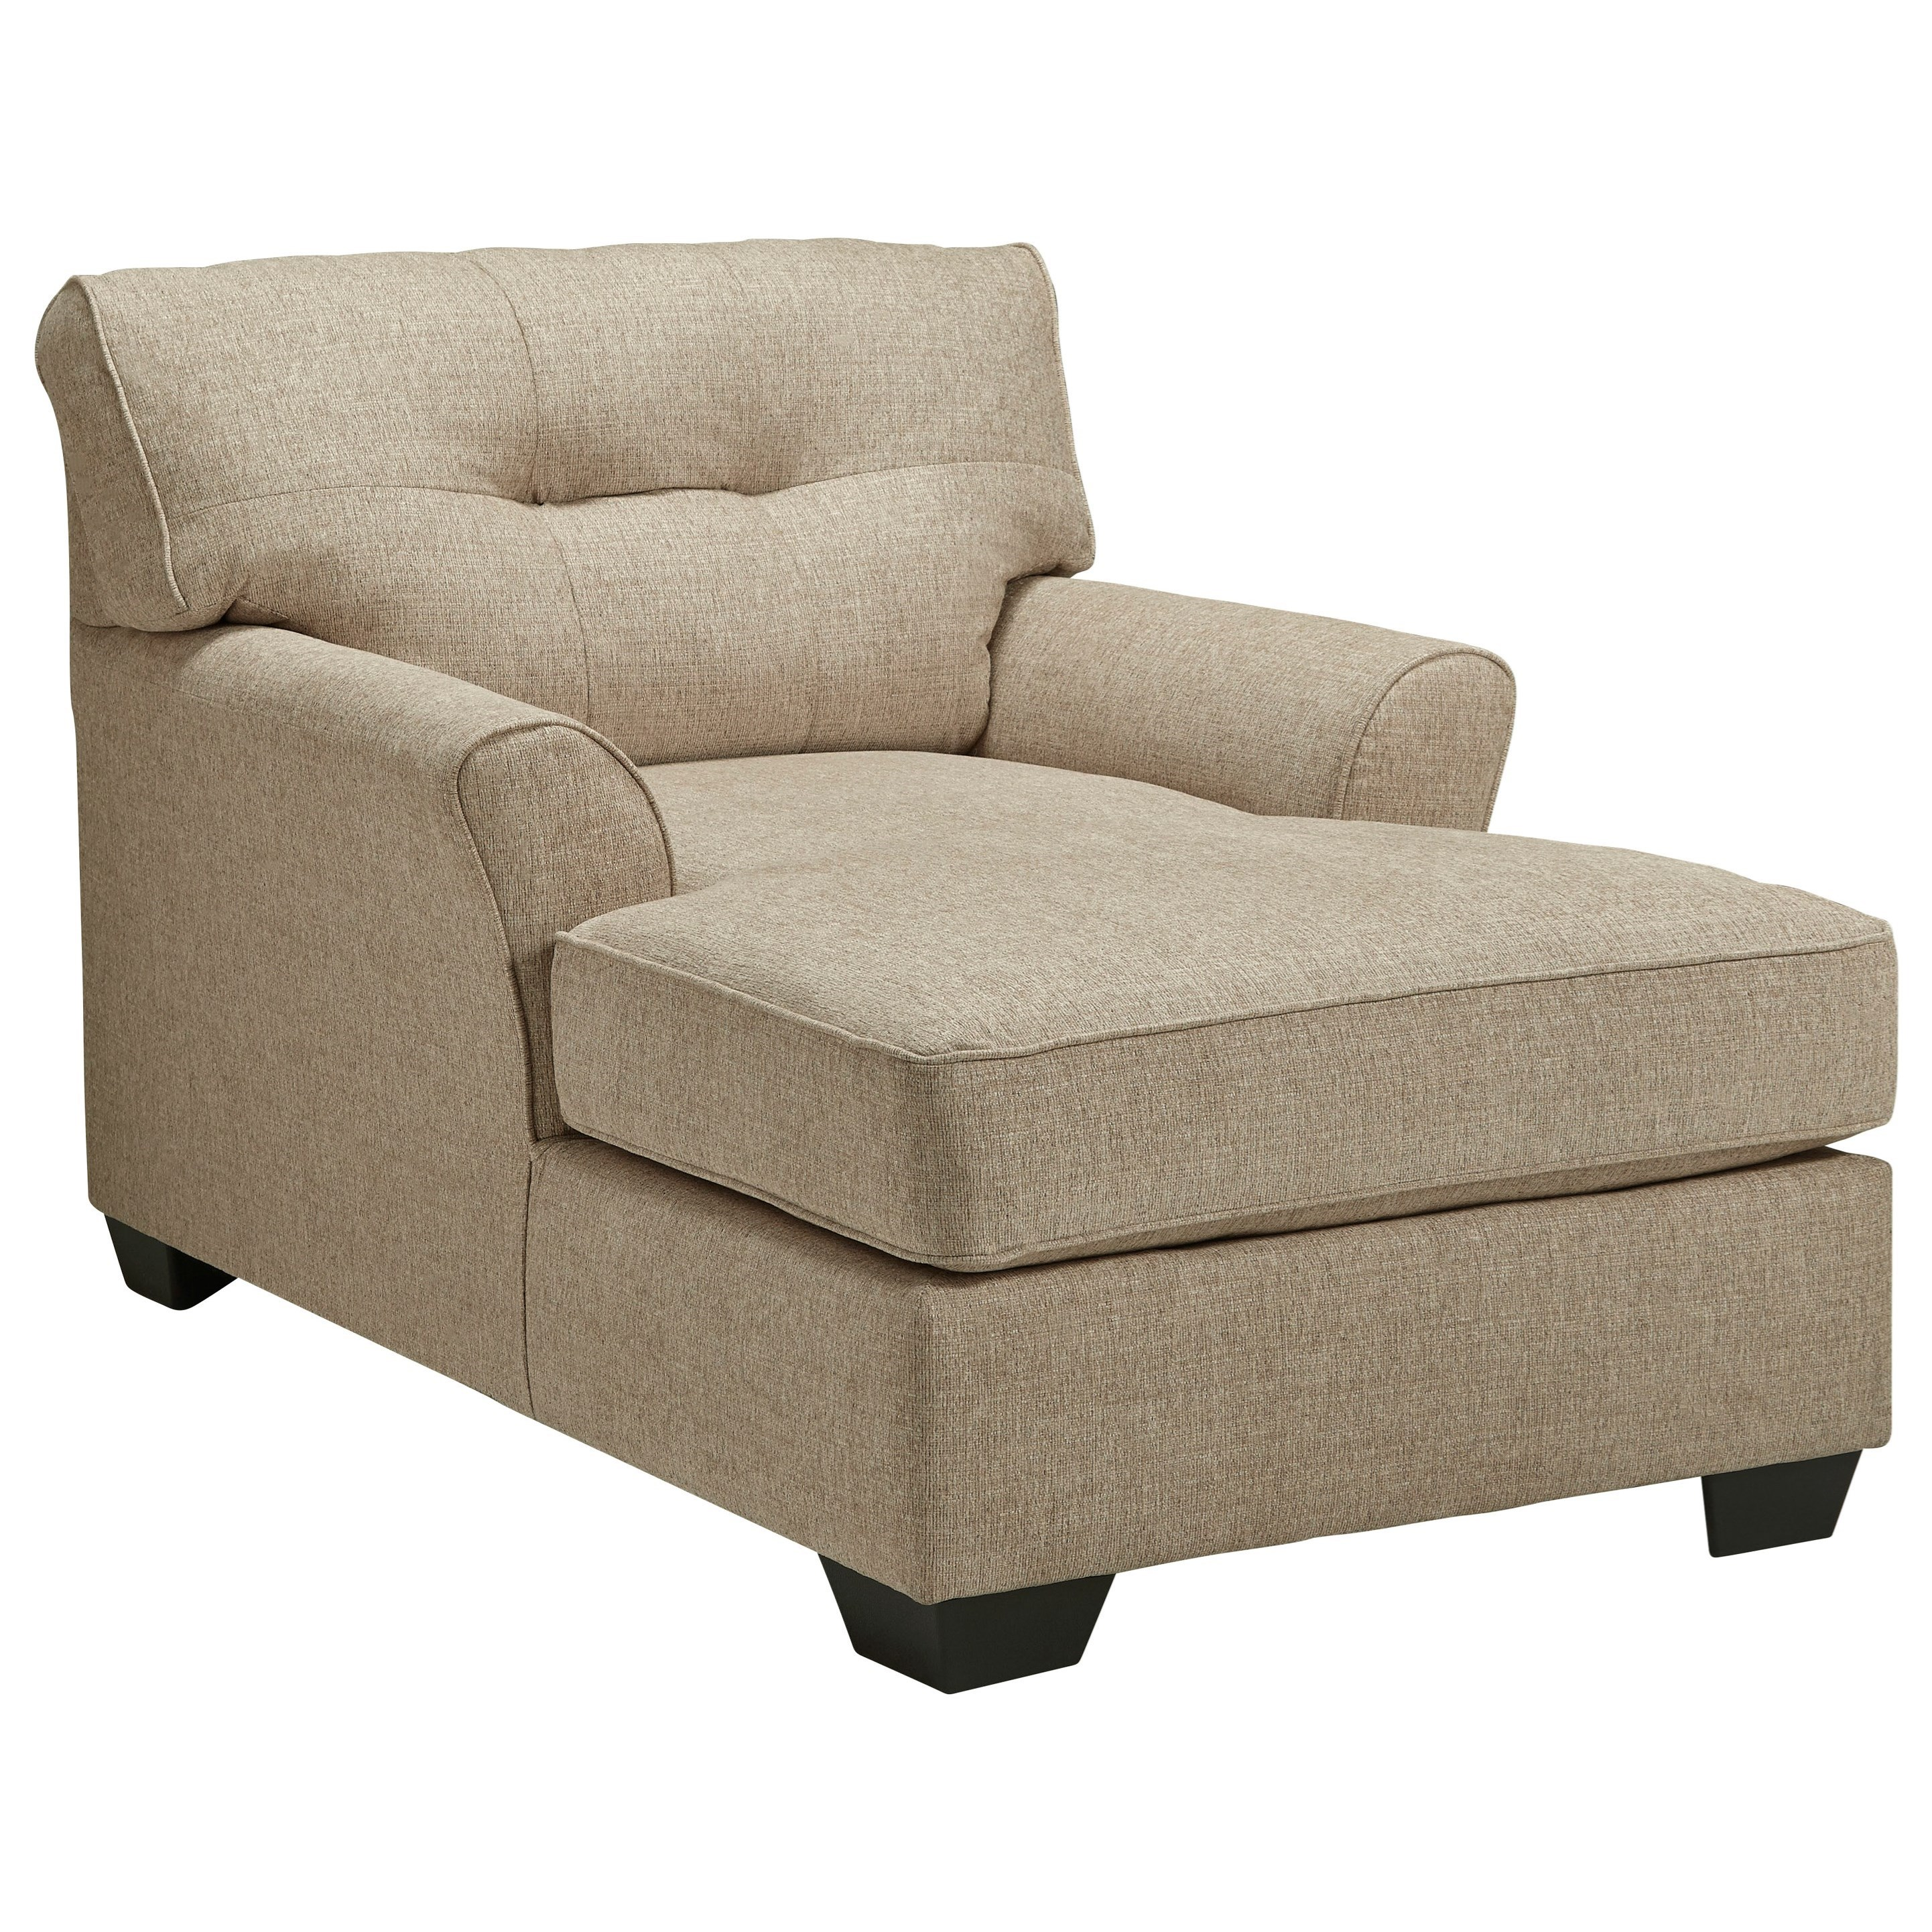 Ardmead Chaise by Benchcraft at Zak's Warehouse Clearance Center